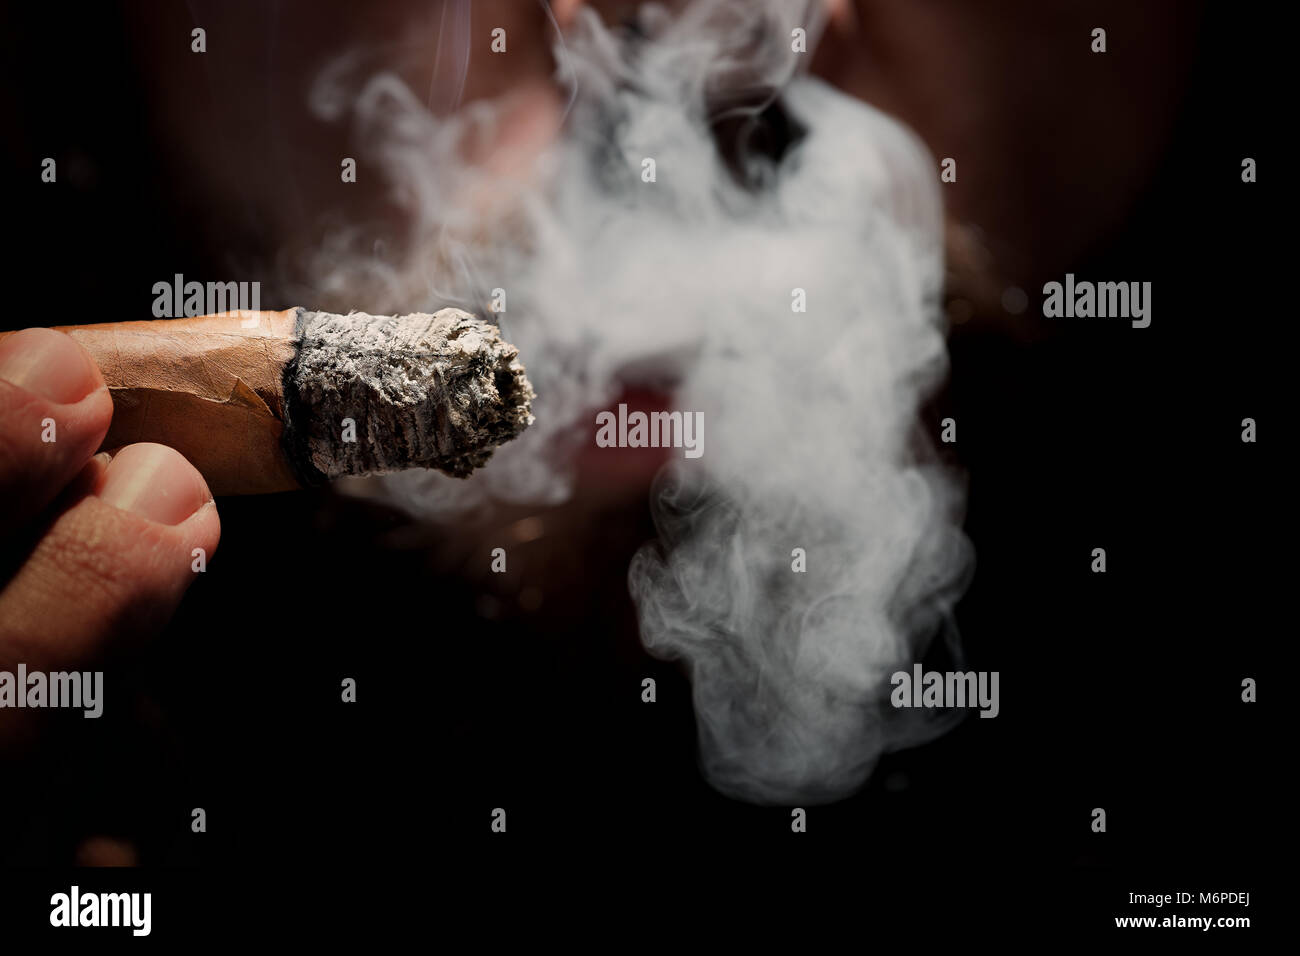 Close-up portraits of man smoking cigar, focussed on exhaling smoke, reduced light, cigar in focus - Stock Image